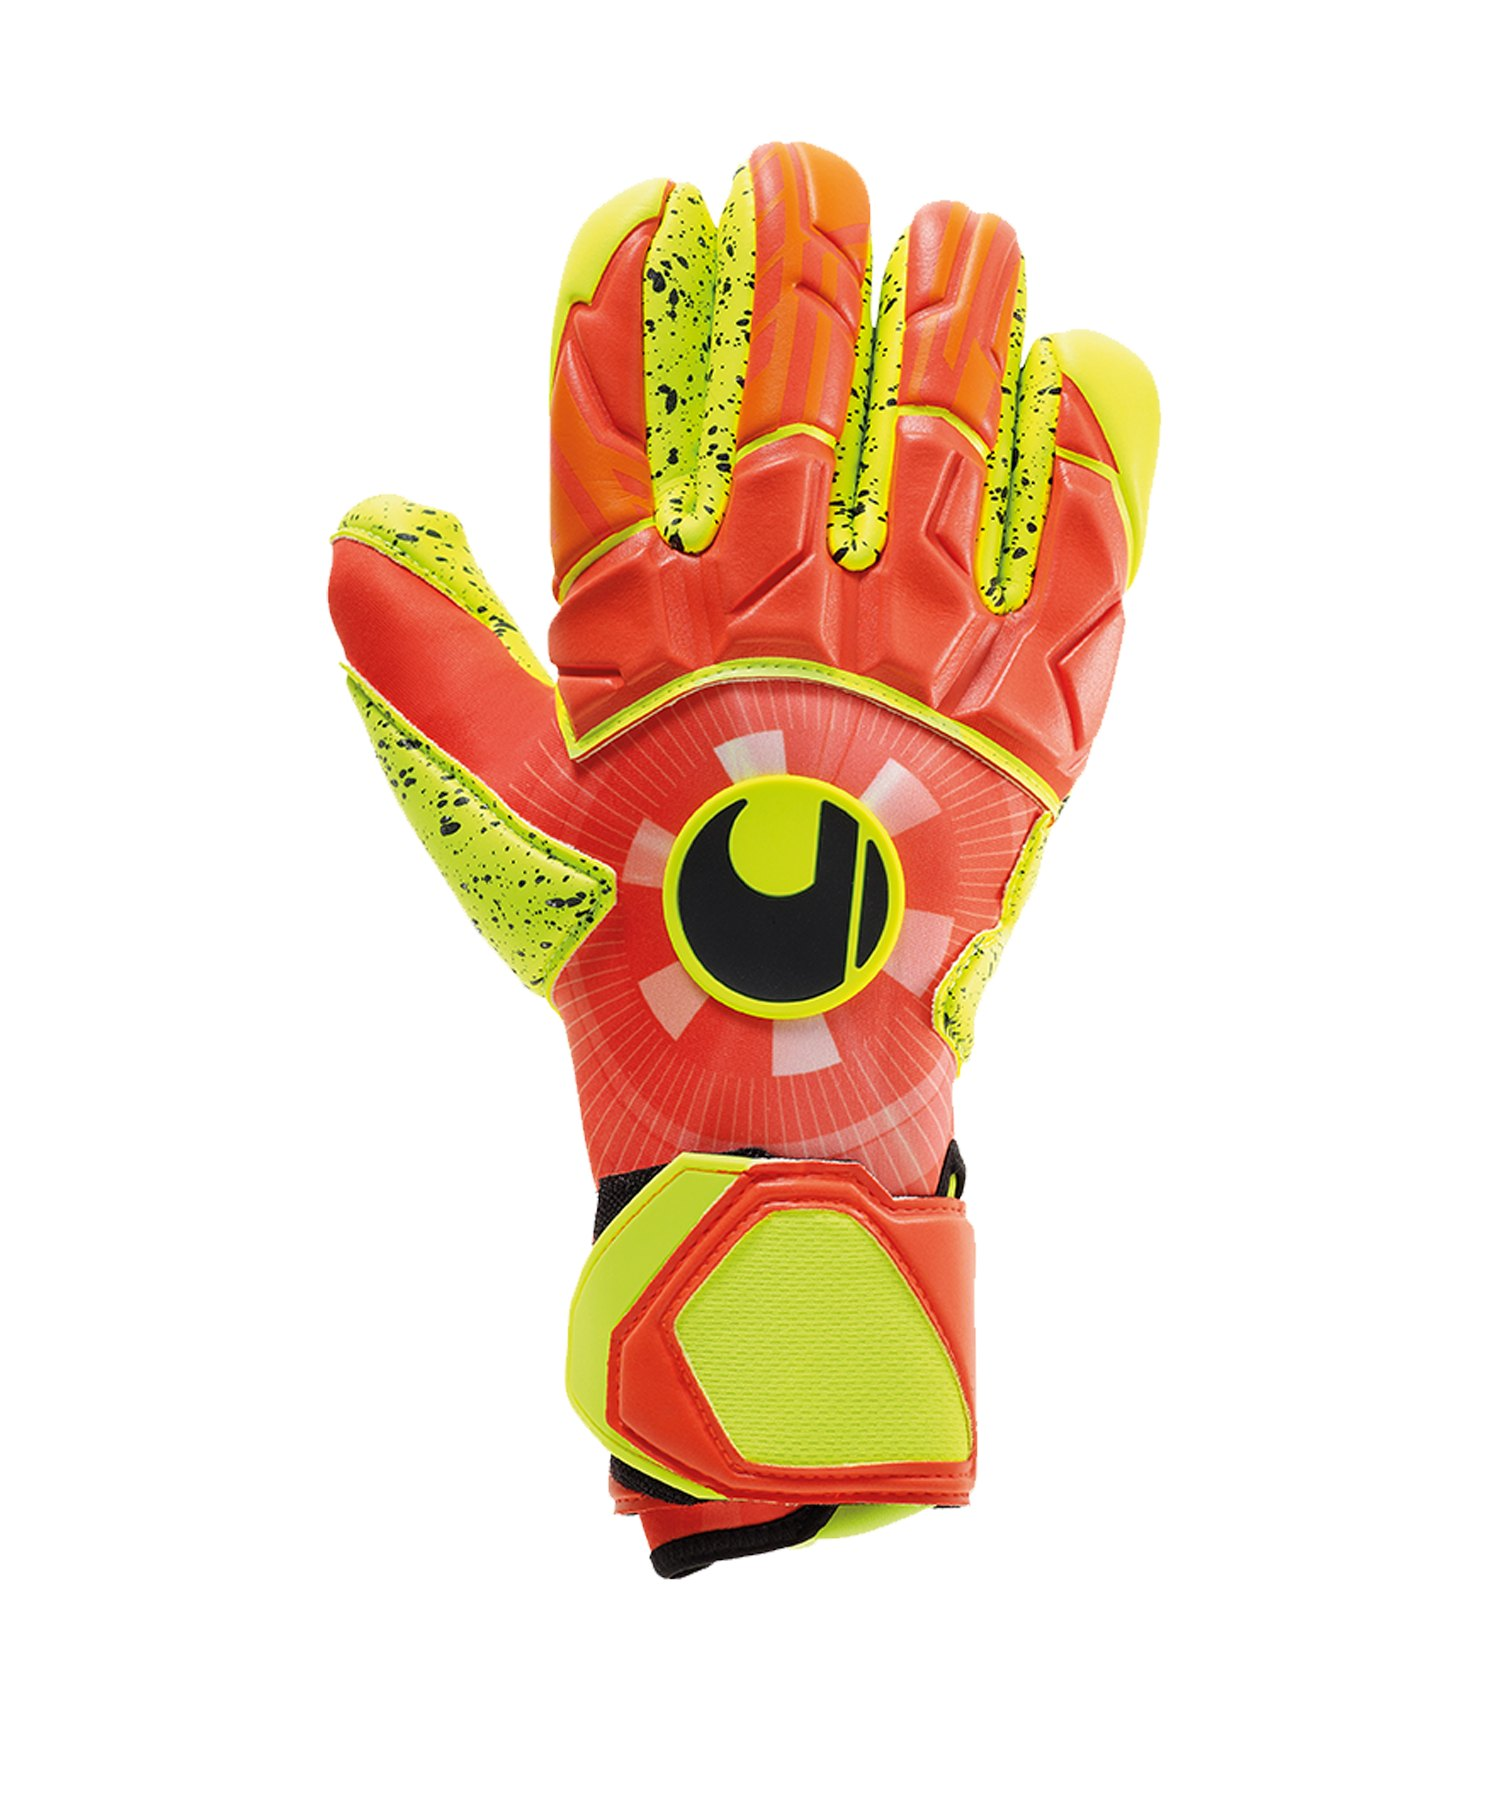 Uhlsport Dyn.Impulse Supergrip FS TW-Handschuh F01 - orange